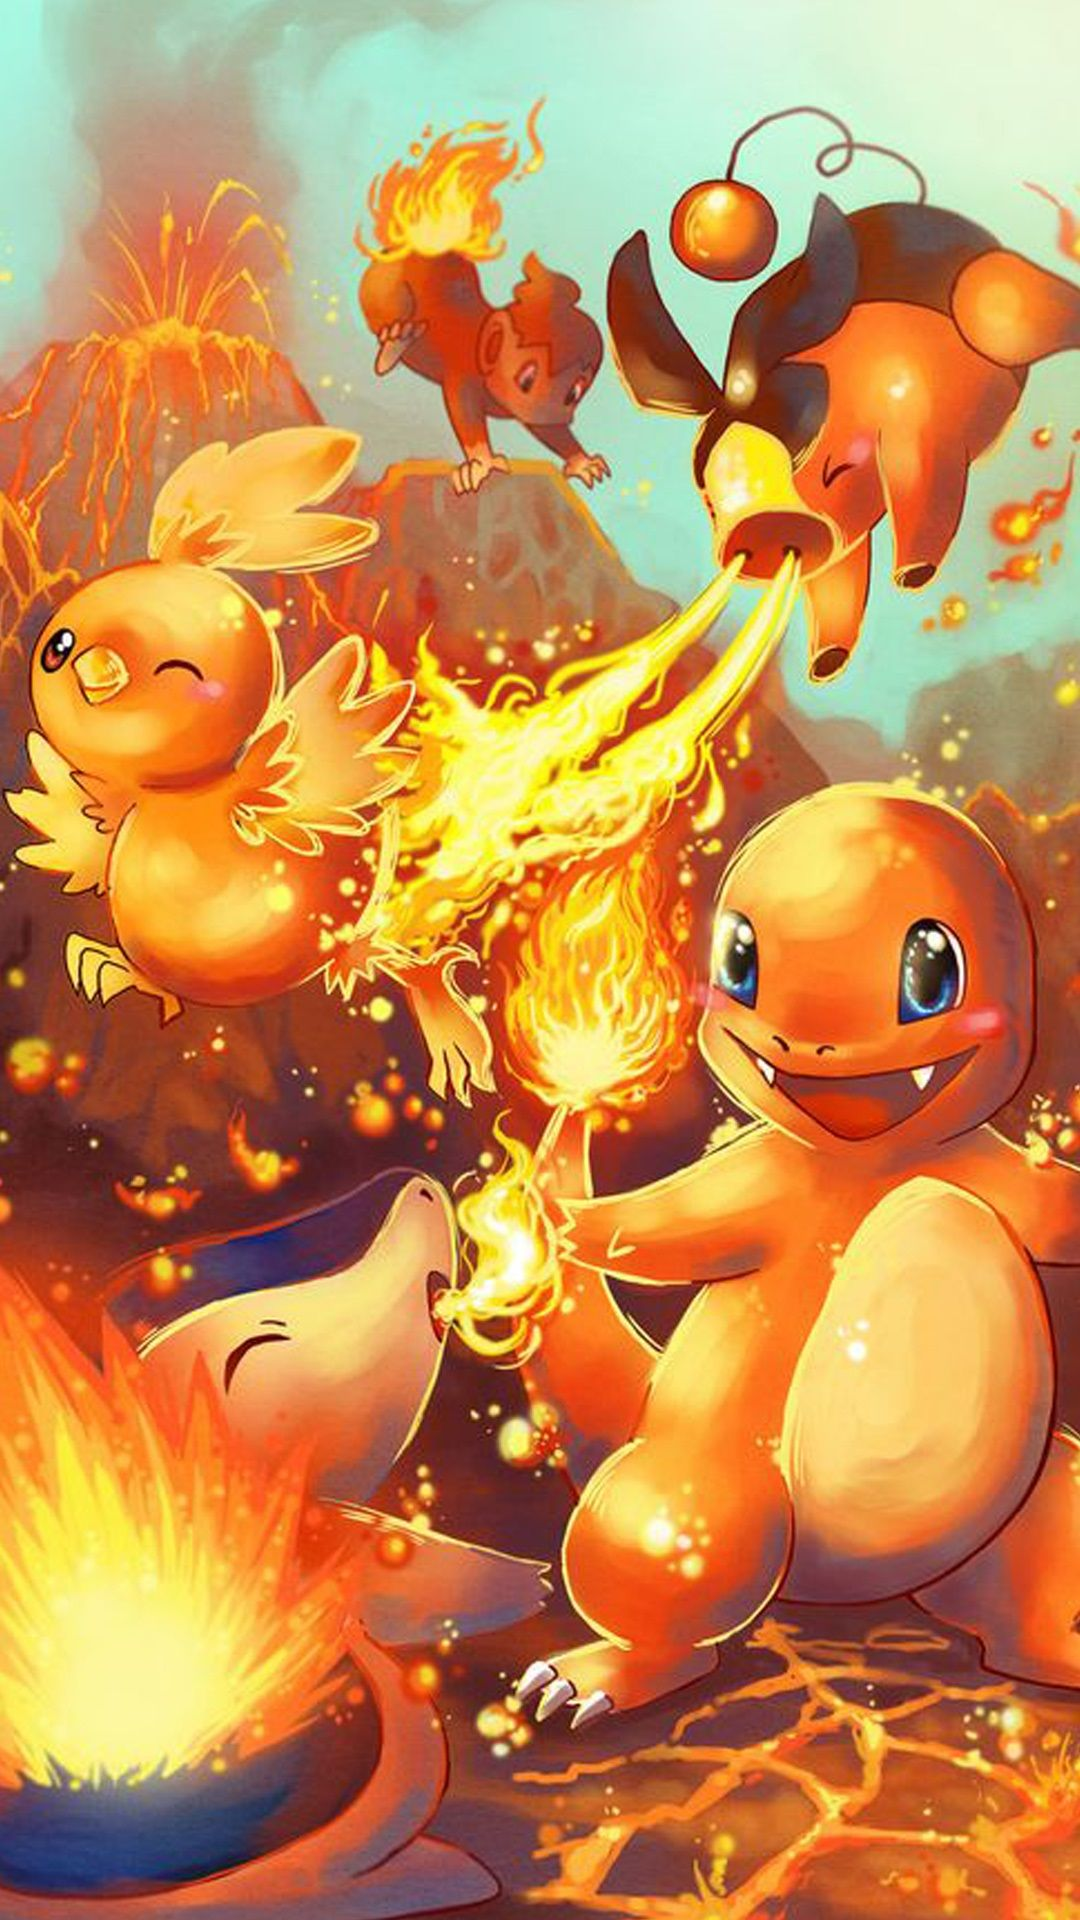 Pokemon Go Charmander fire characters Iphone hd wallpaper | Wallpaper